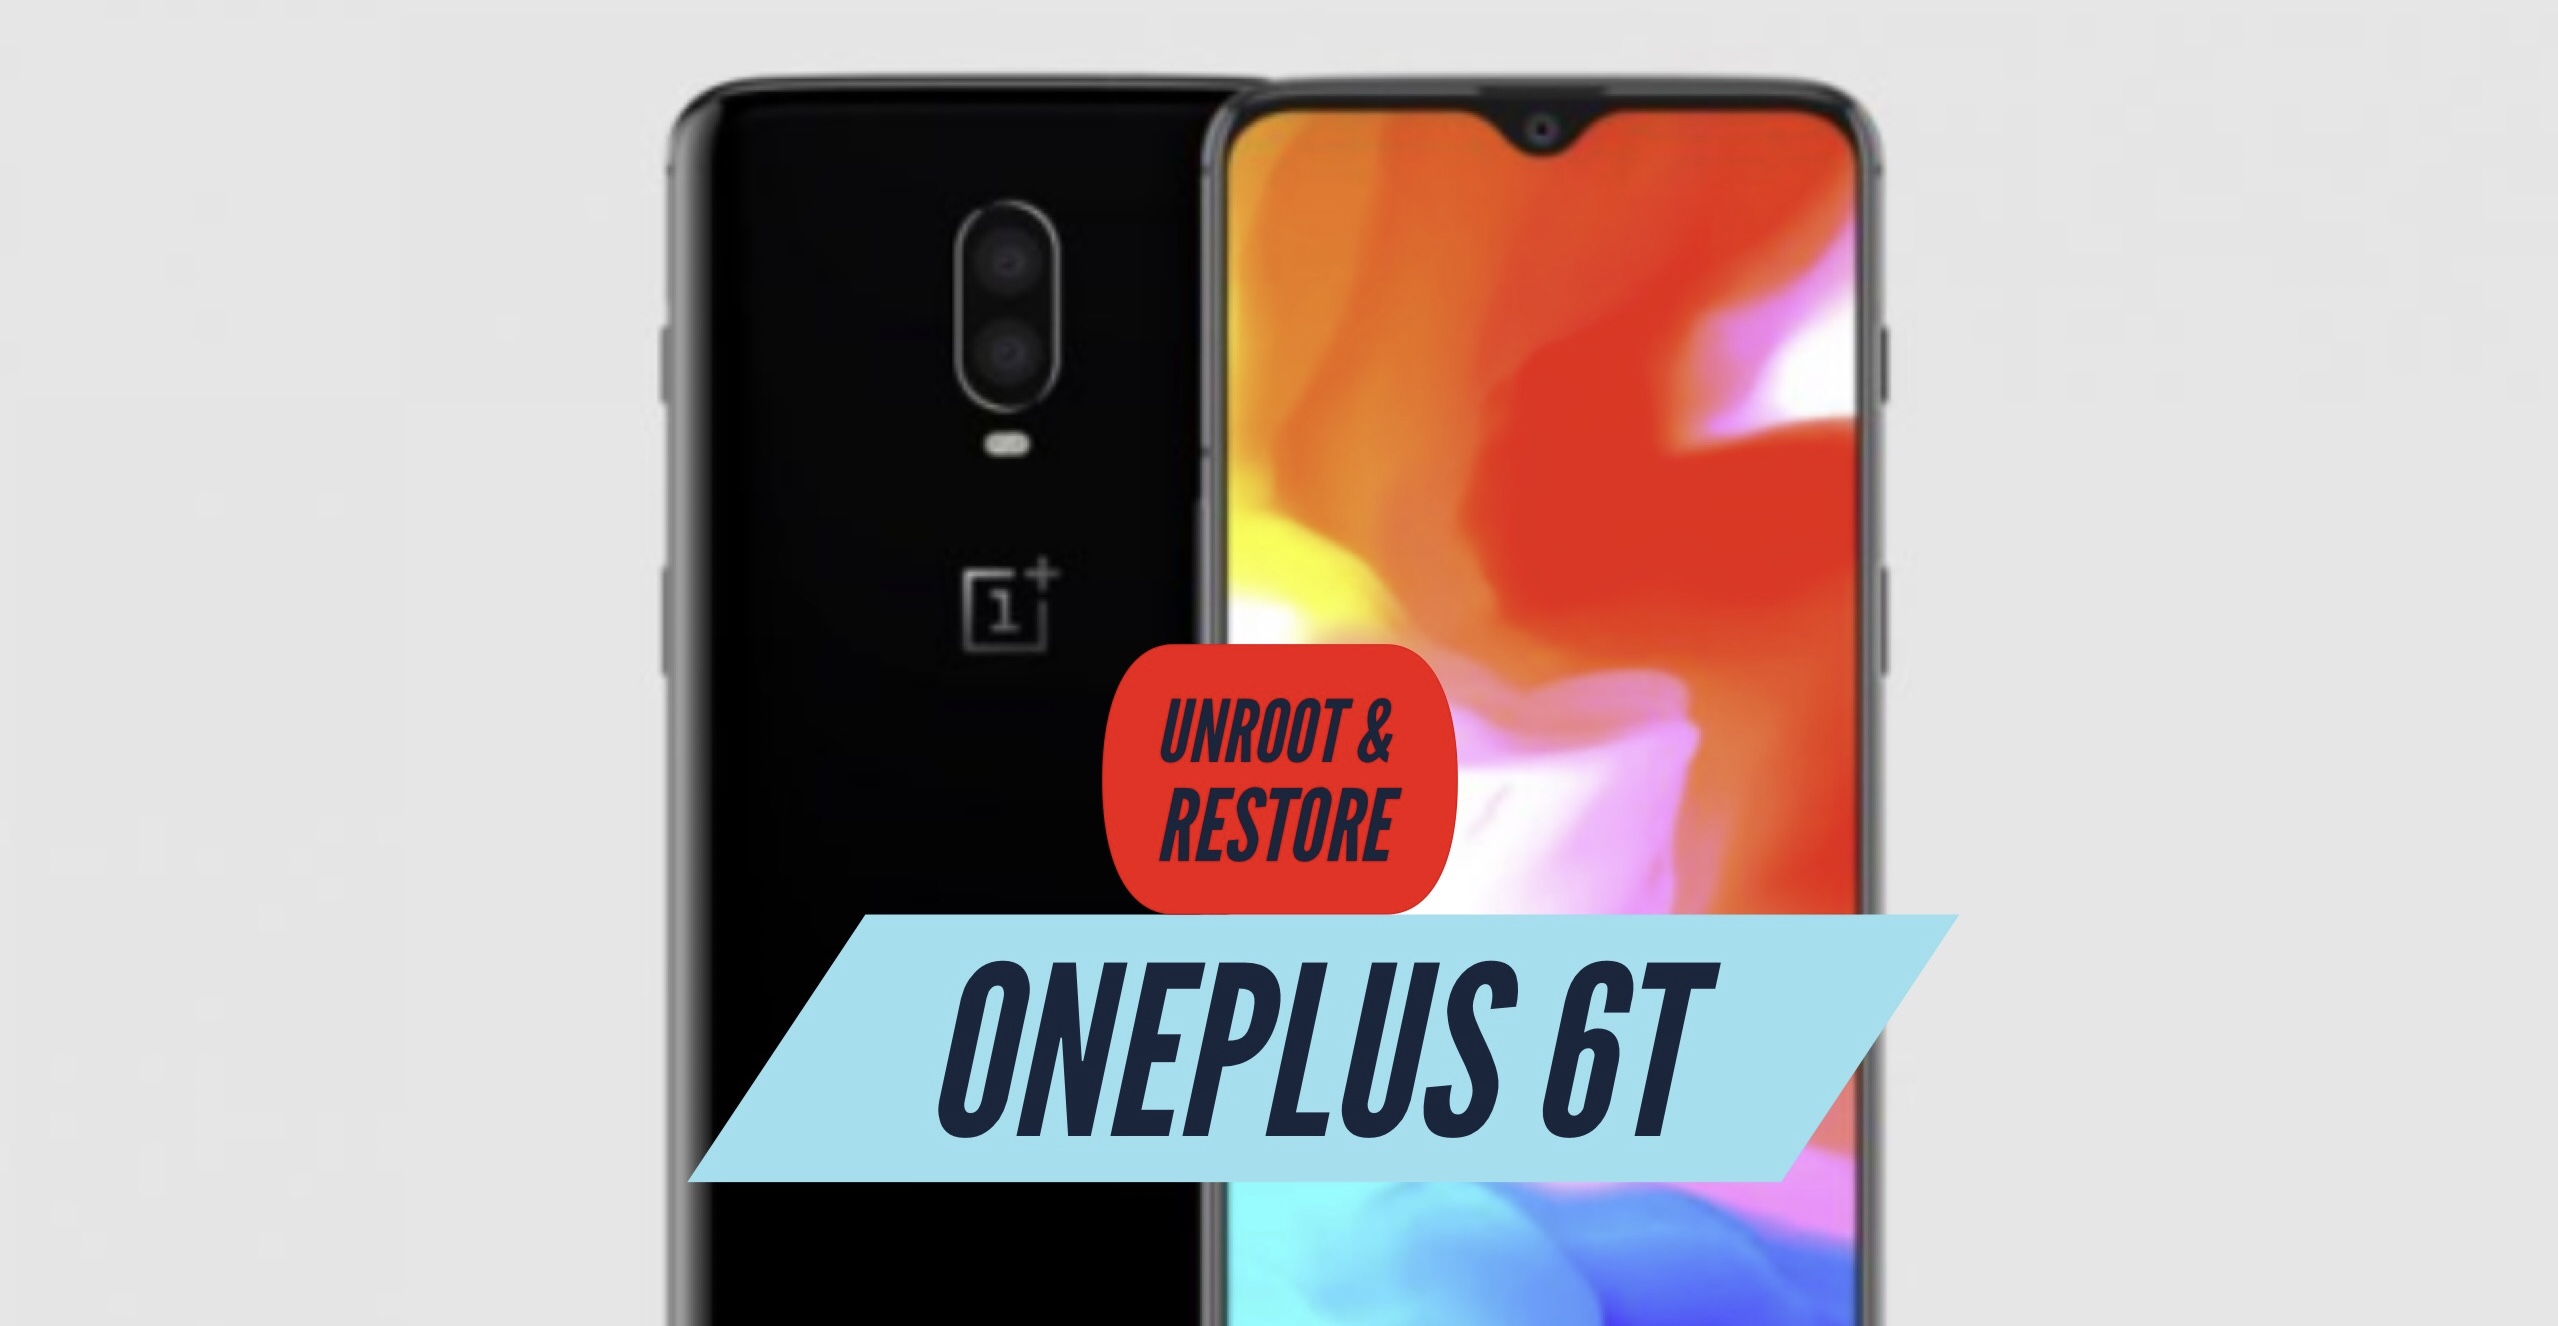 How to Unroot OnePlus 6T & Restore Stock ROM? Install!